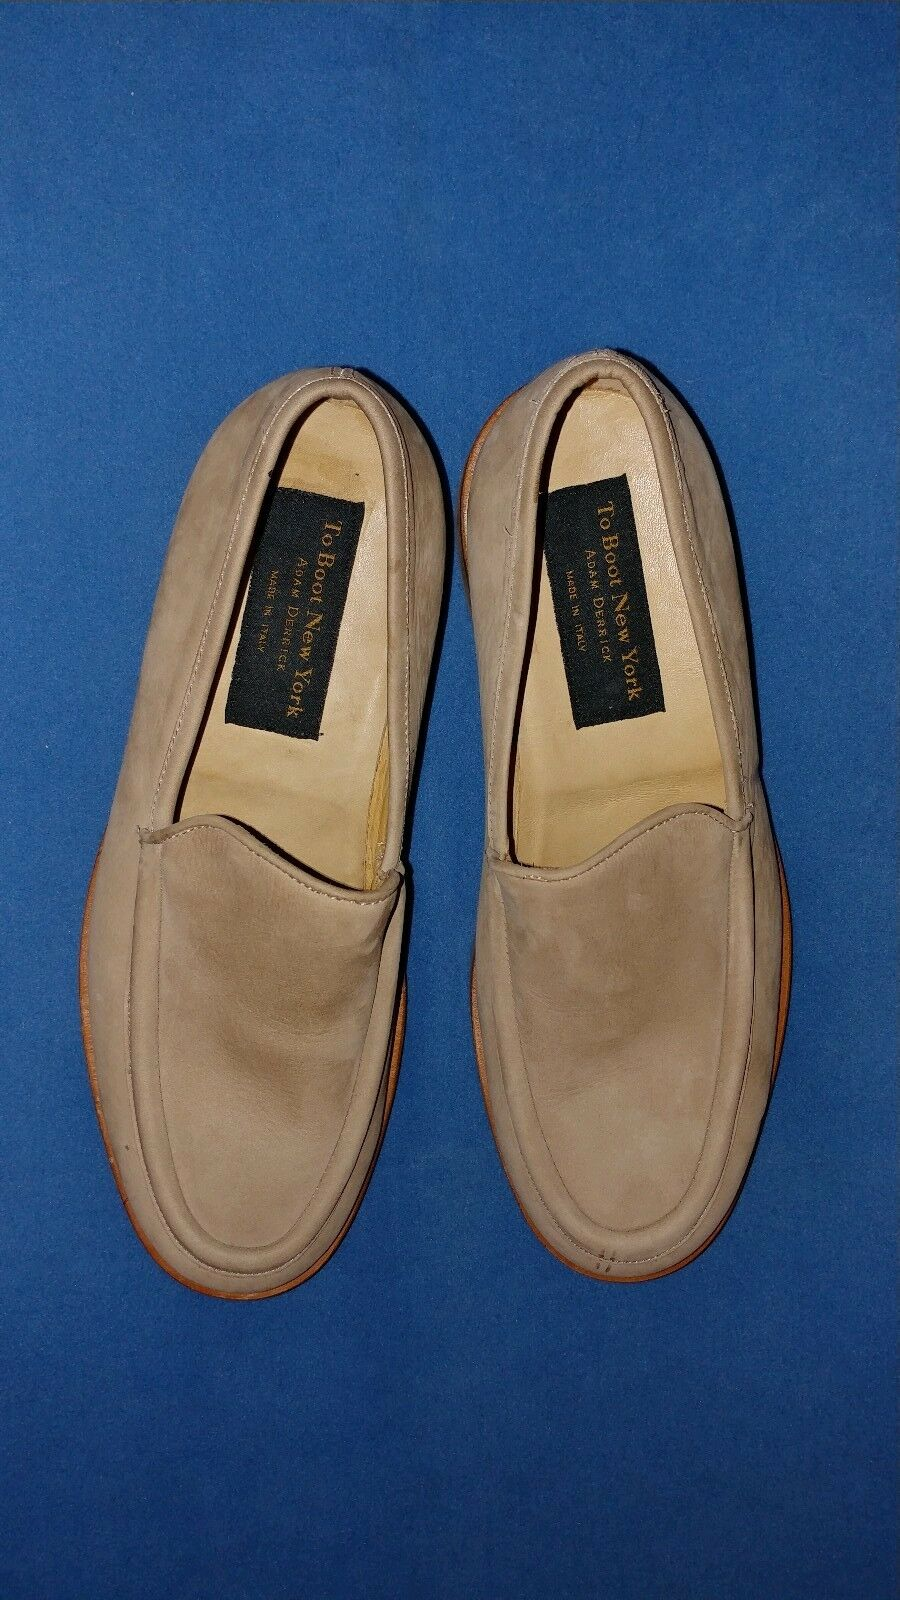 NWOB Made in  To Boot New York Men's Beige Leather Loafers Size 9.5